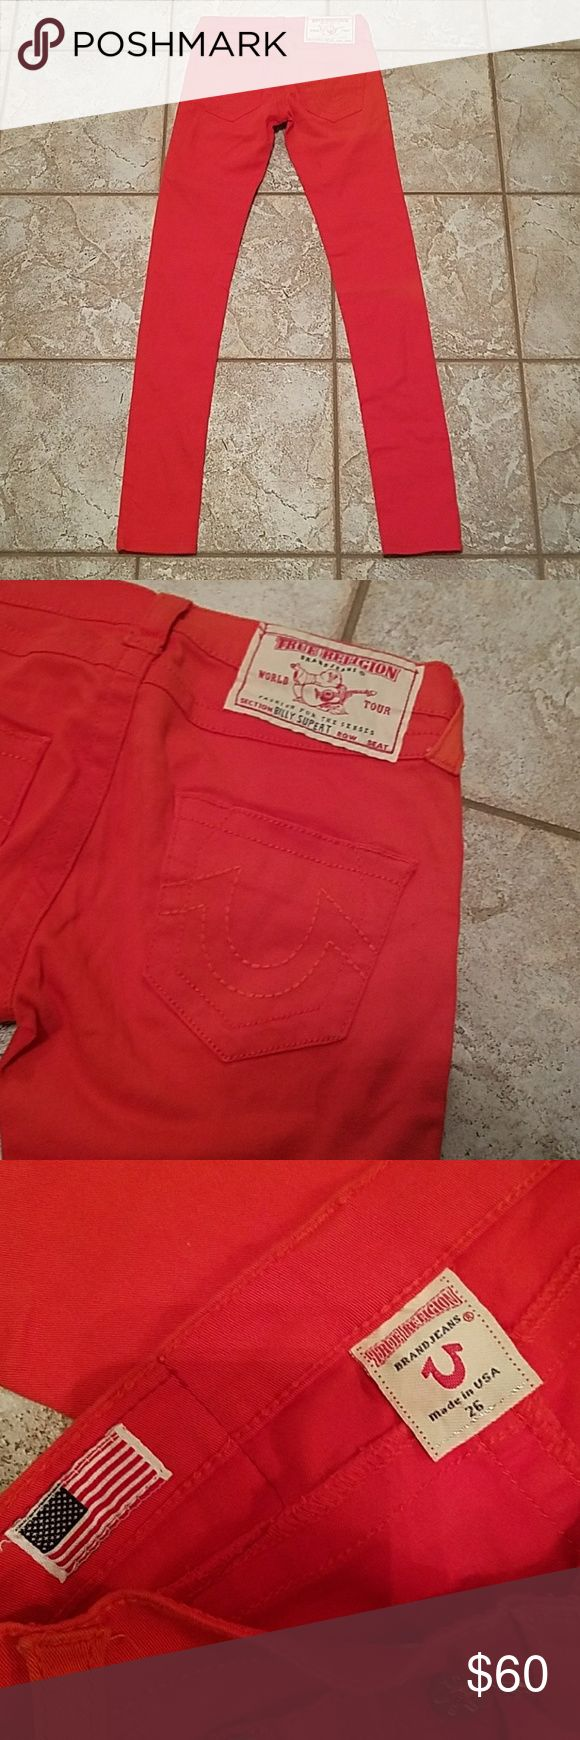 True Religion blood orange skinny jeans Size 26 True Religion blood orange skinny jeans in perfect condition! True Religion Jeans Skinny